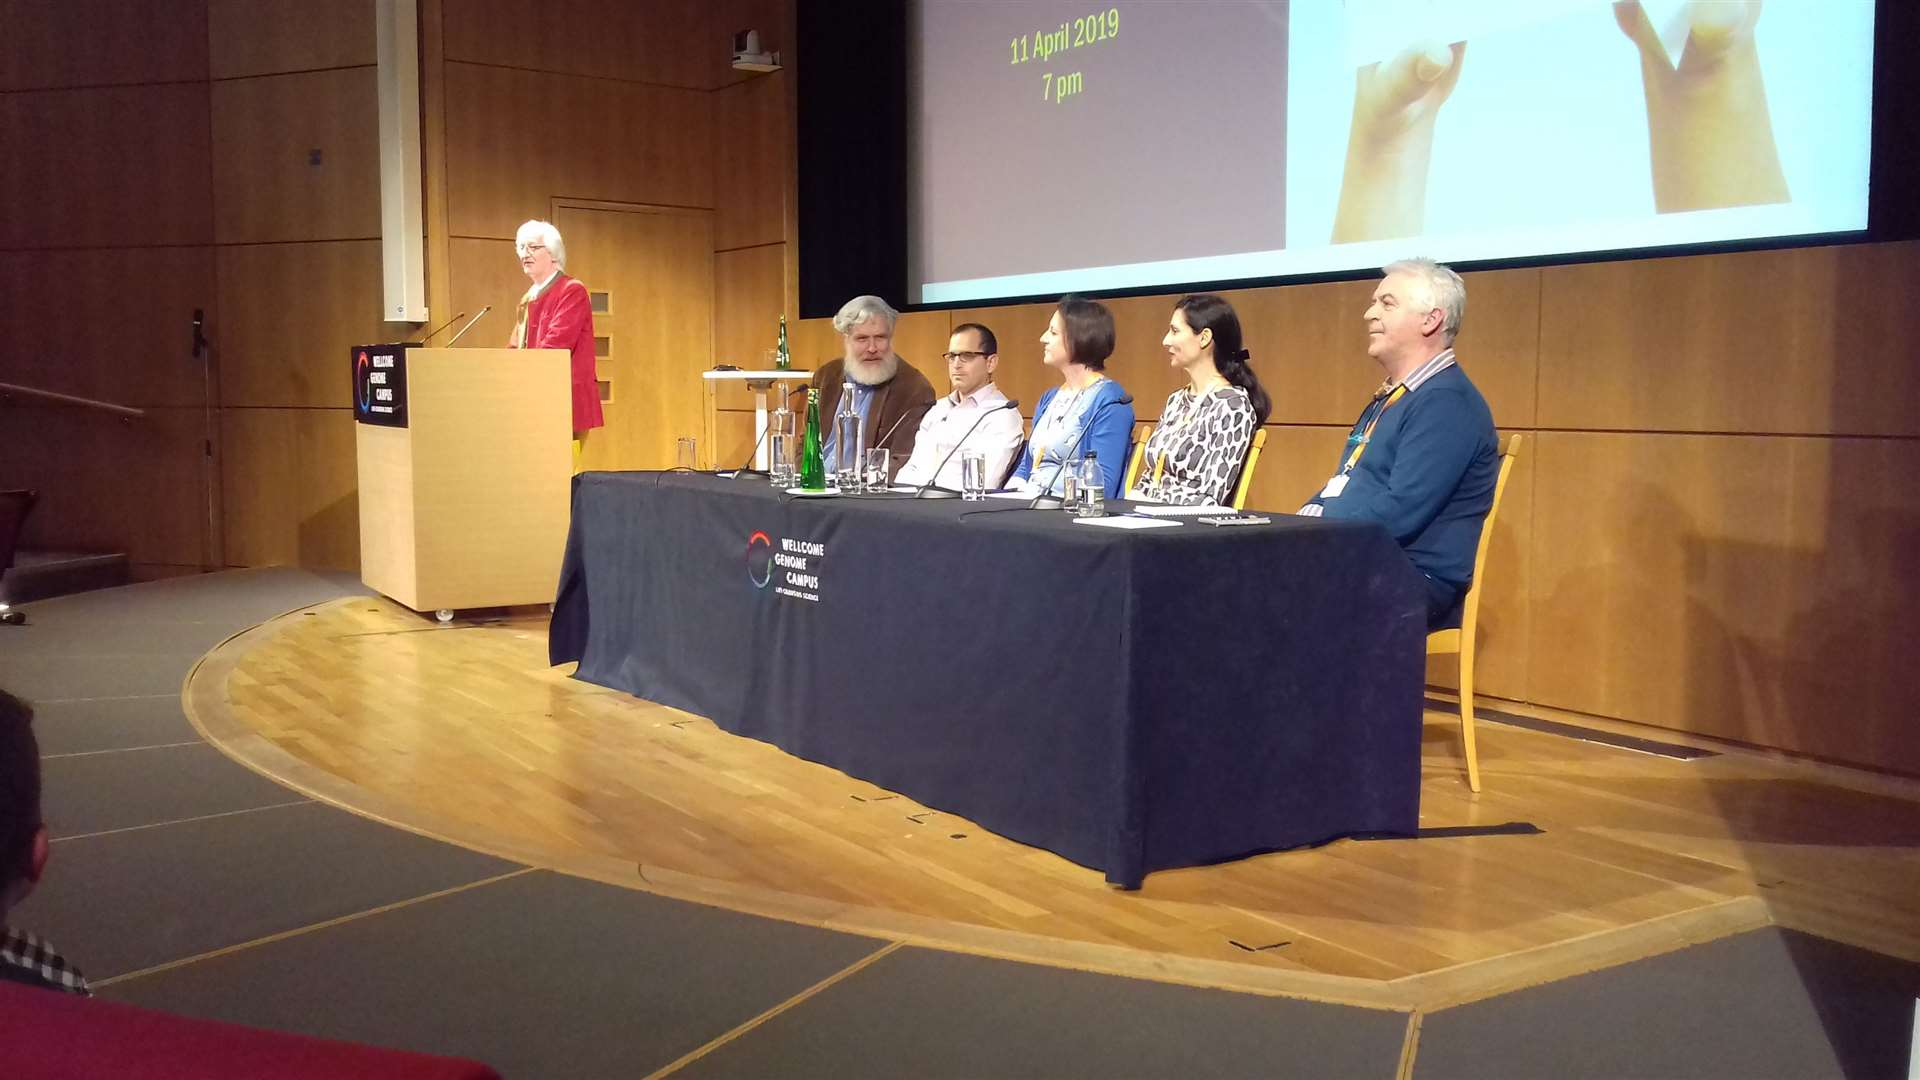 The panel at Wellcome Genome Campus' Conference Hall, with chair Professor Stephan Beck addressing the audience. Picture: Mike Scialom